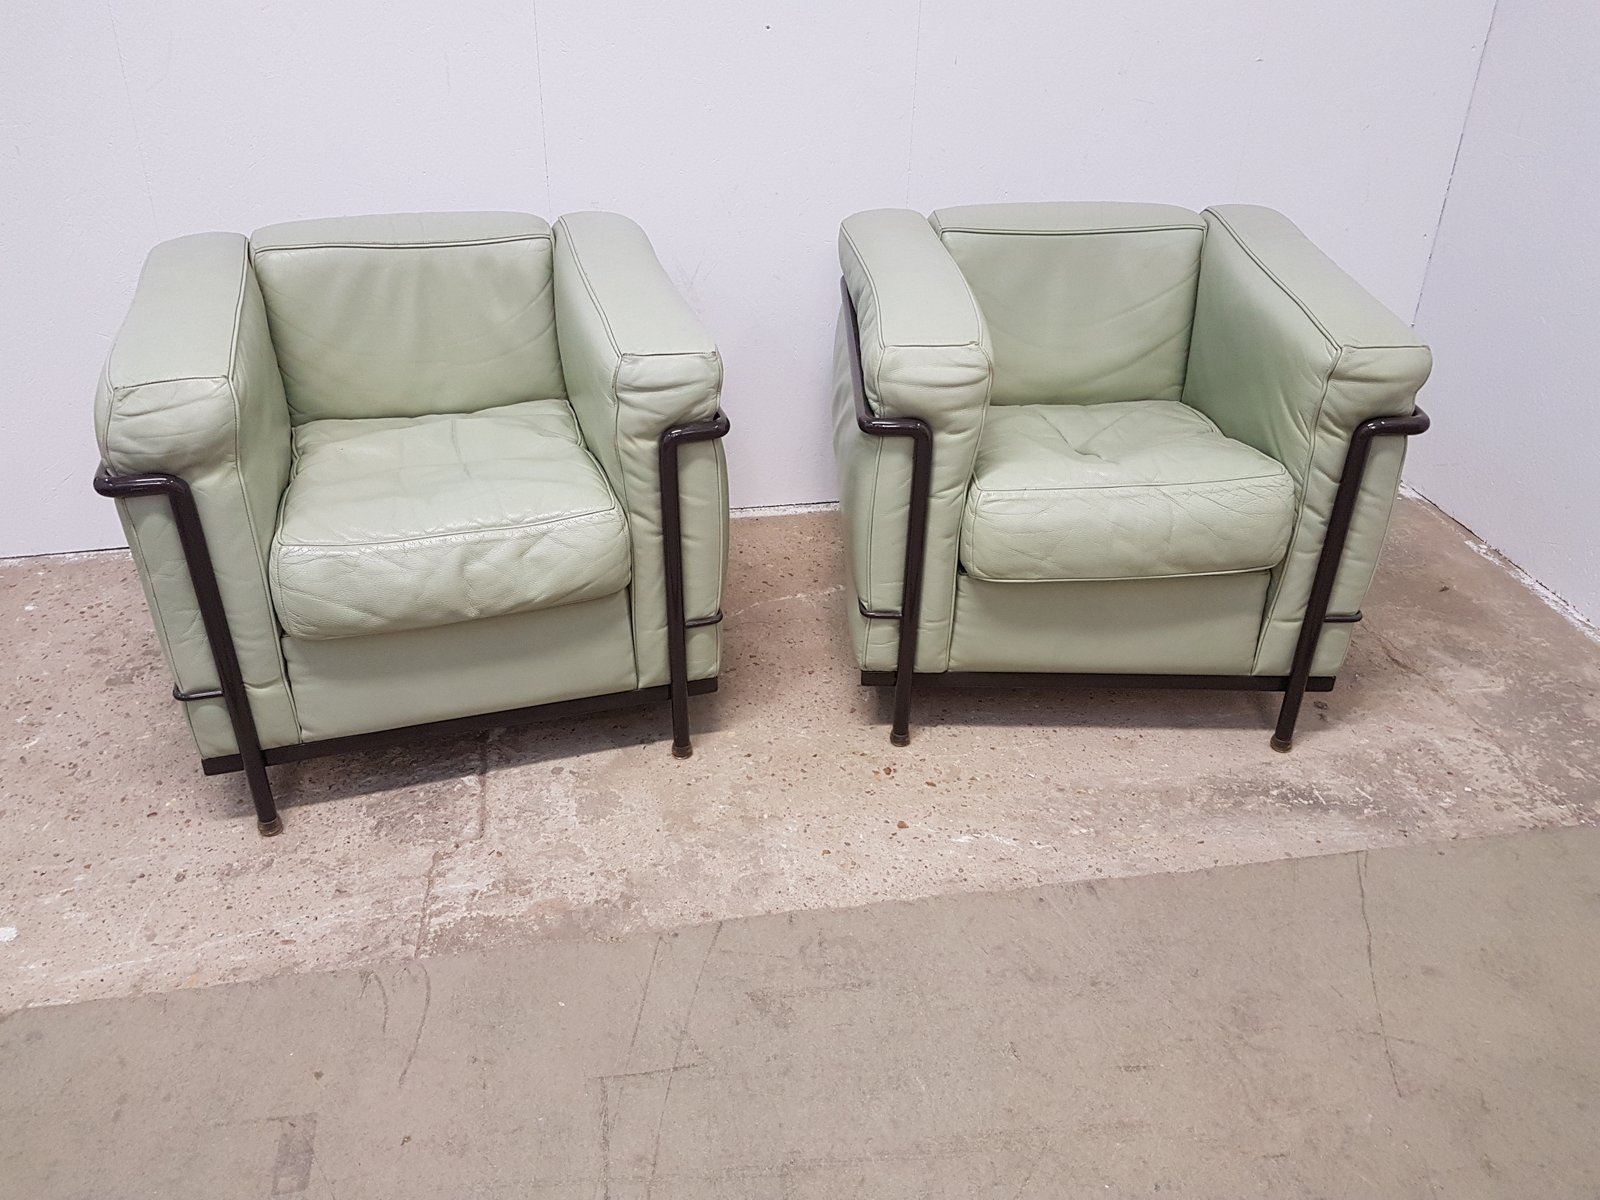 Vintage LC2 Lounge Chairs by Le Corbusier for Cassina, Set of 2